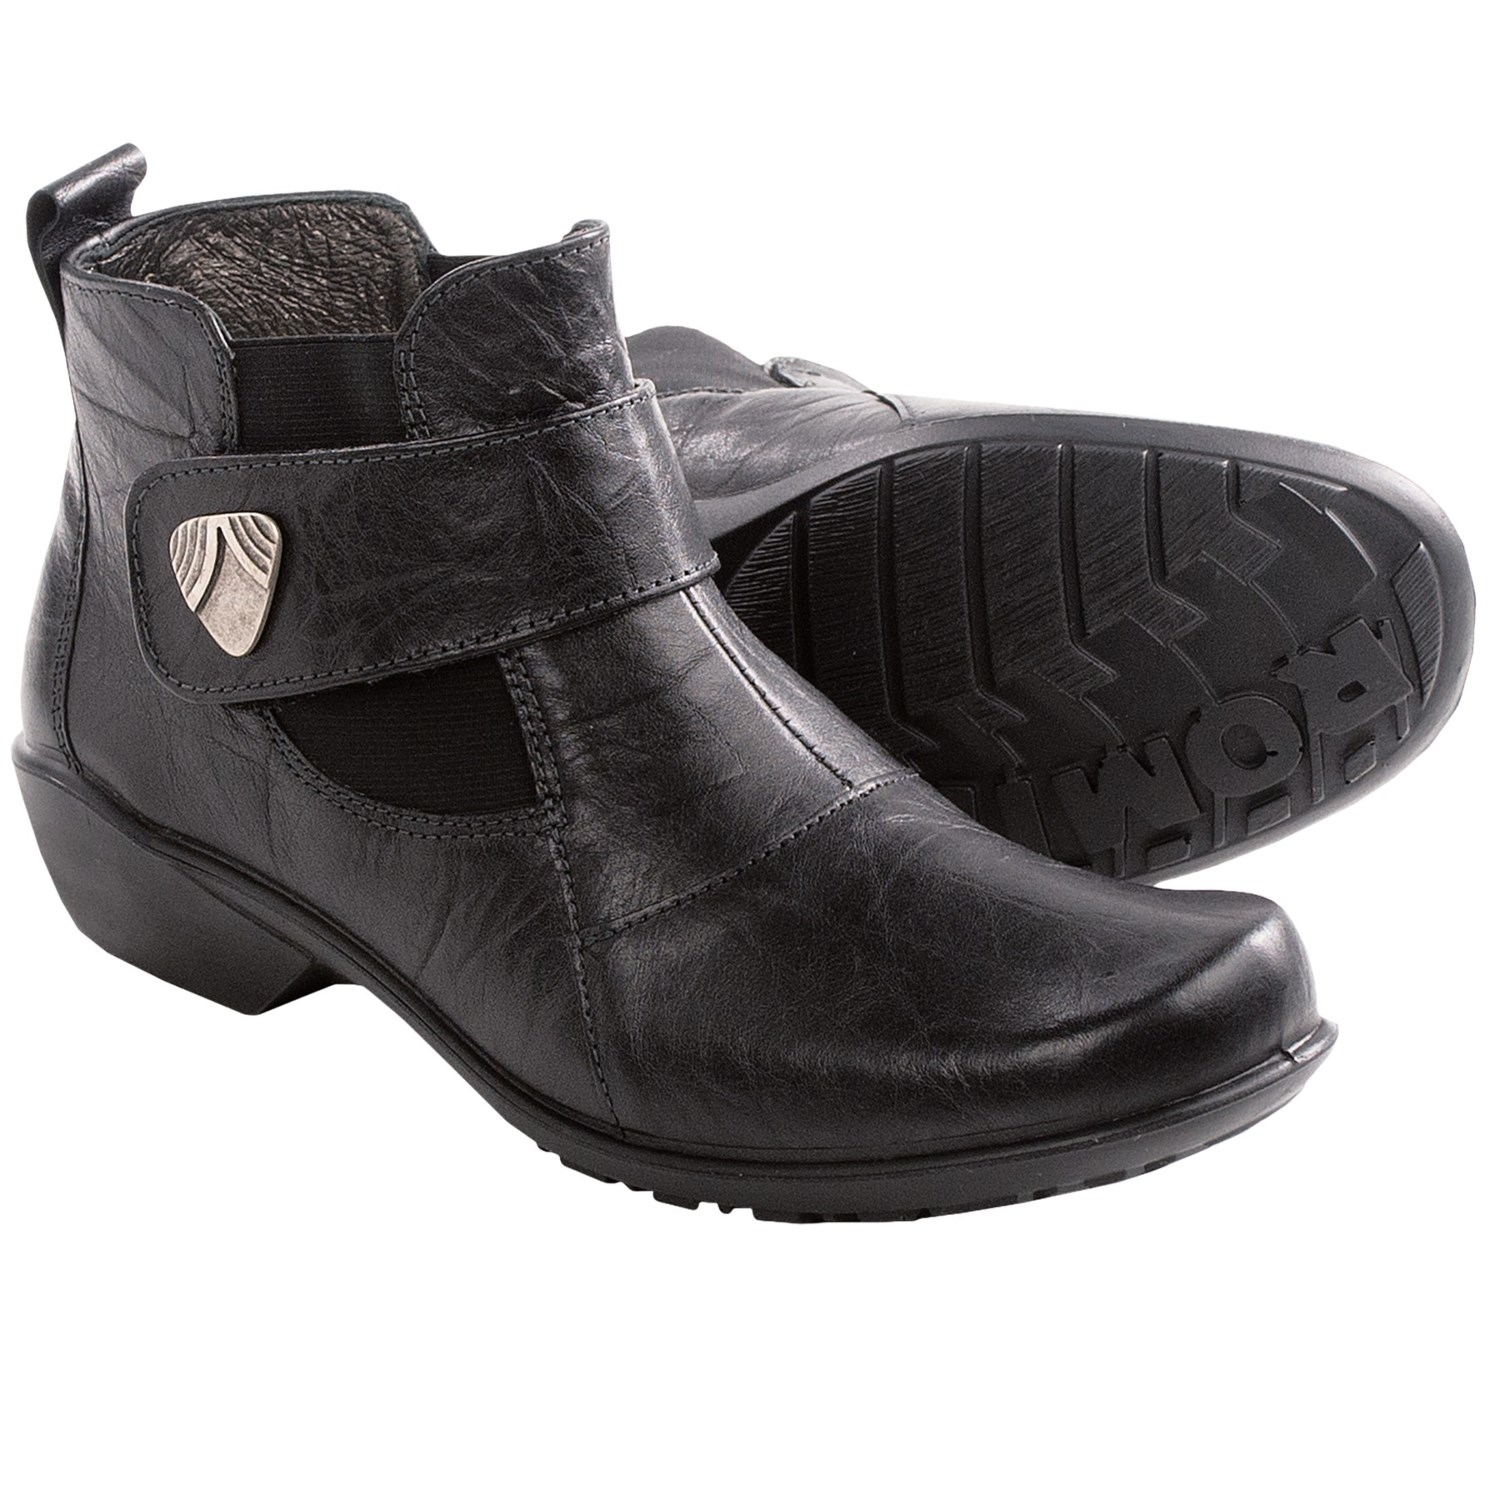 Romika Citylight 78 Ankle Boots - Leather (For Women) in Black